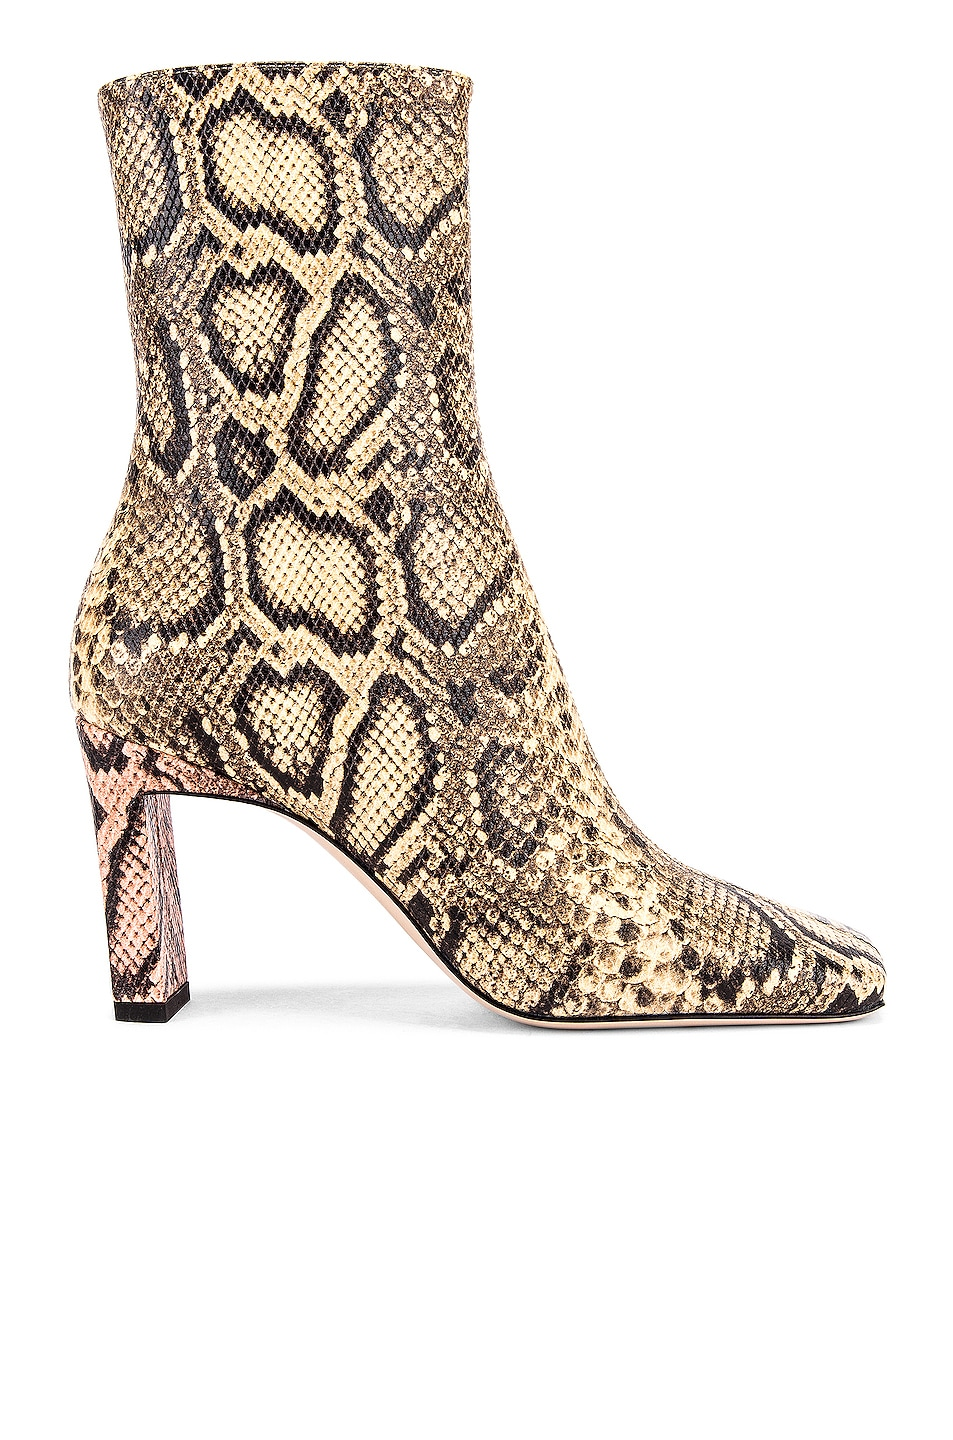 Image 1 of Wandler Isa Boots in Mustard & Python